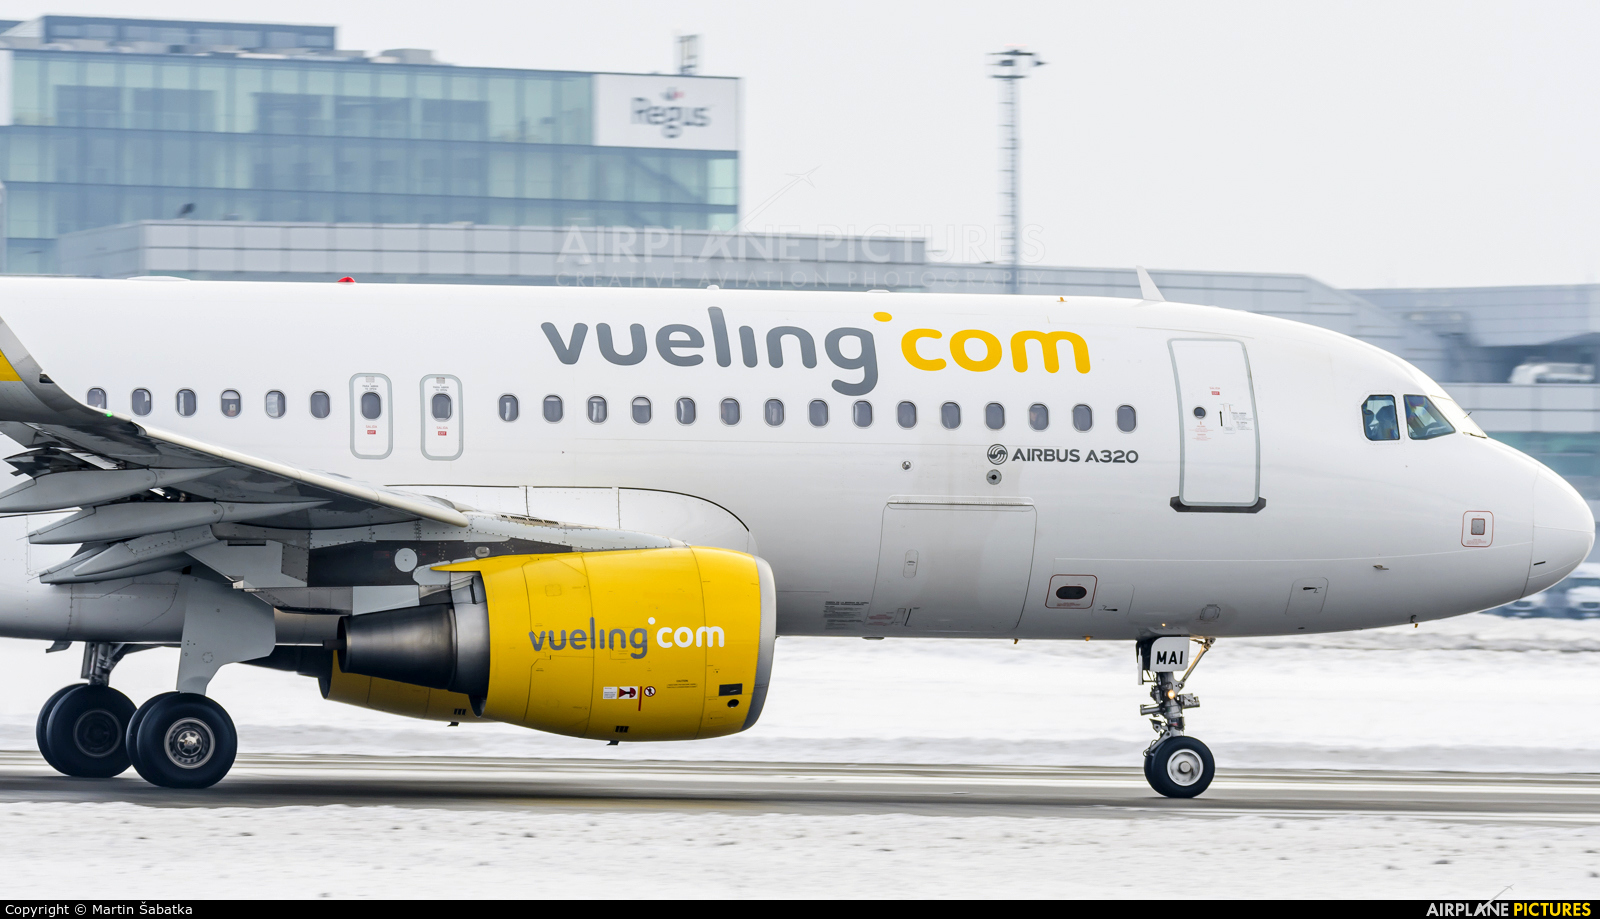 Vueling Airlines EC-MAI aircraft at Prague - Václav Havel